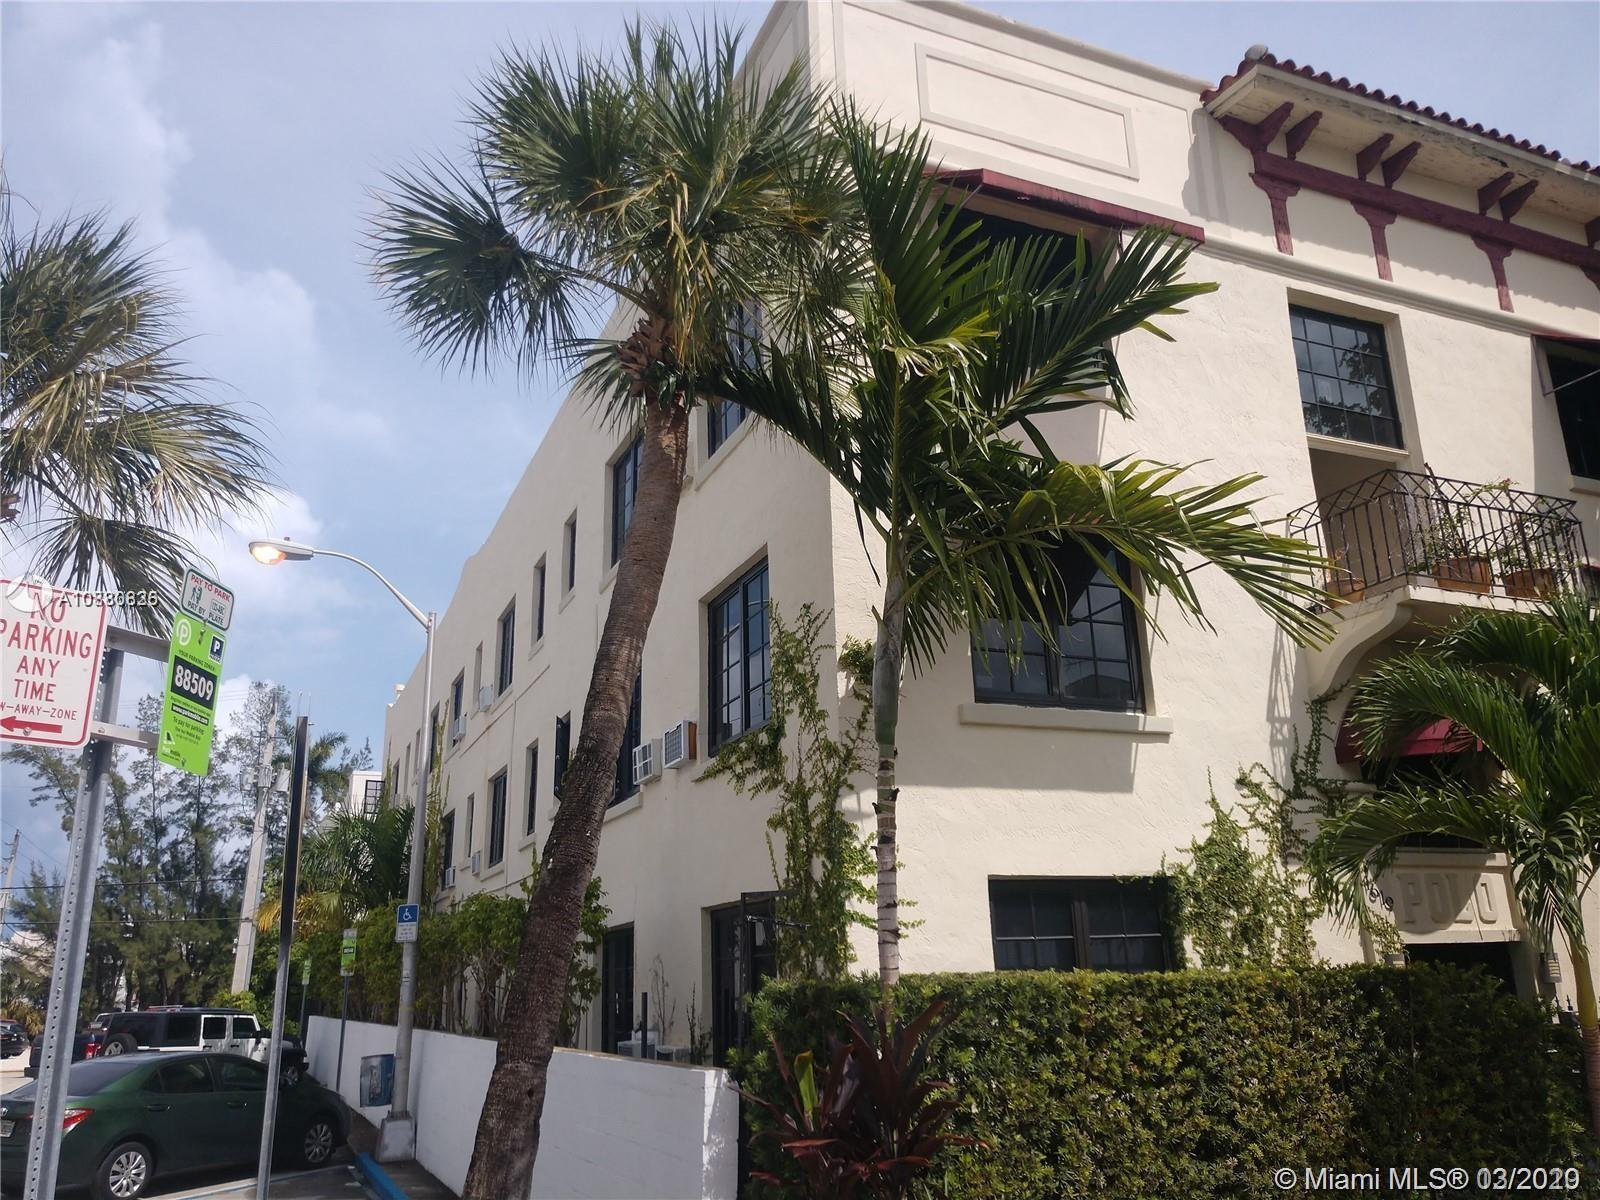 1619 Jefferson Ave # 19, Miami Beach, Florida 33139, 1 Bedroom Bedrooms, ,1 BathroomBathrooms,Residential,For Sale,1619 Jefferson Ave # 19,A10830826